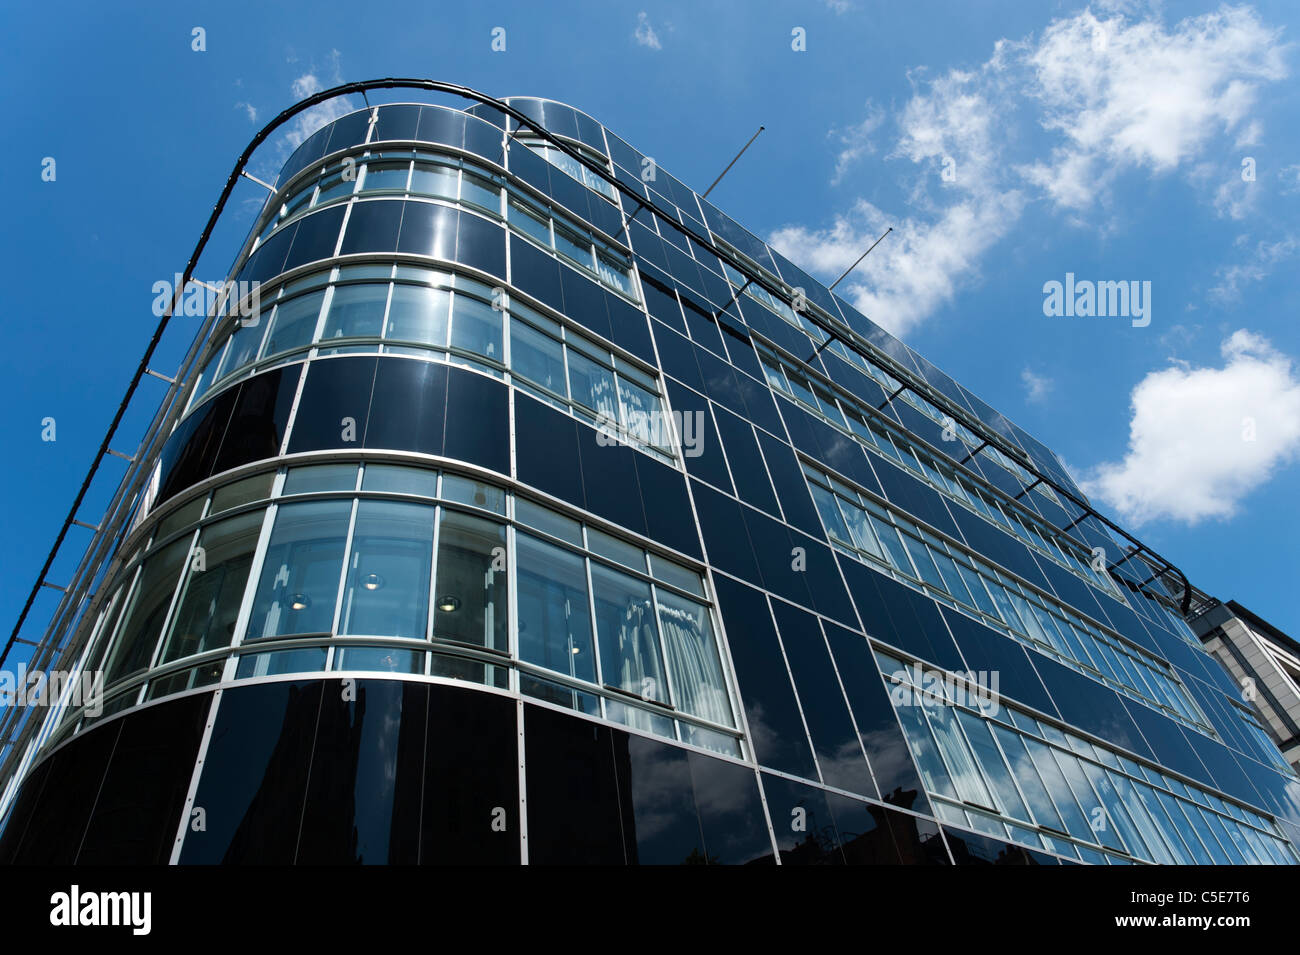 The Daily Express Building on Fleet Street, London, UK - Stock Image